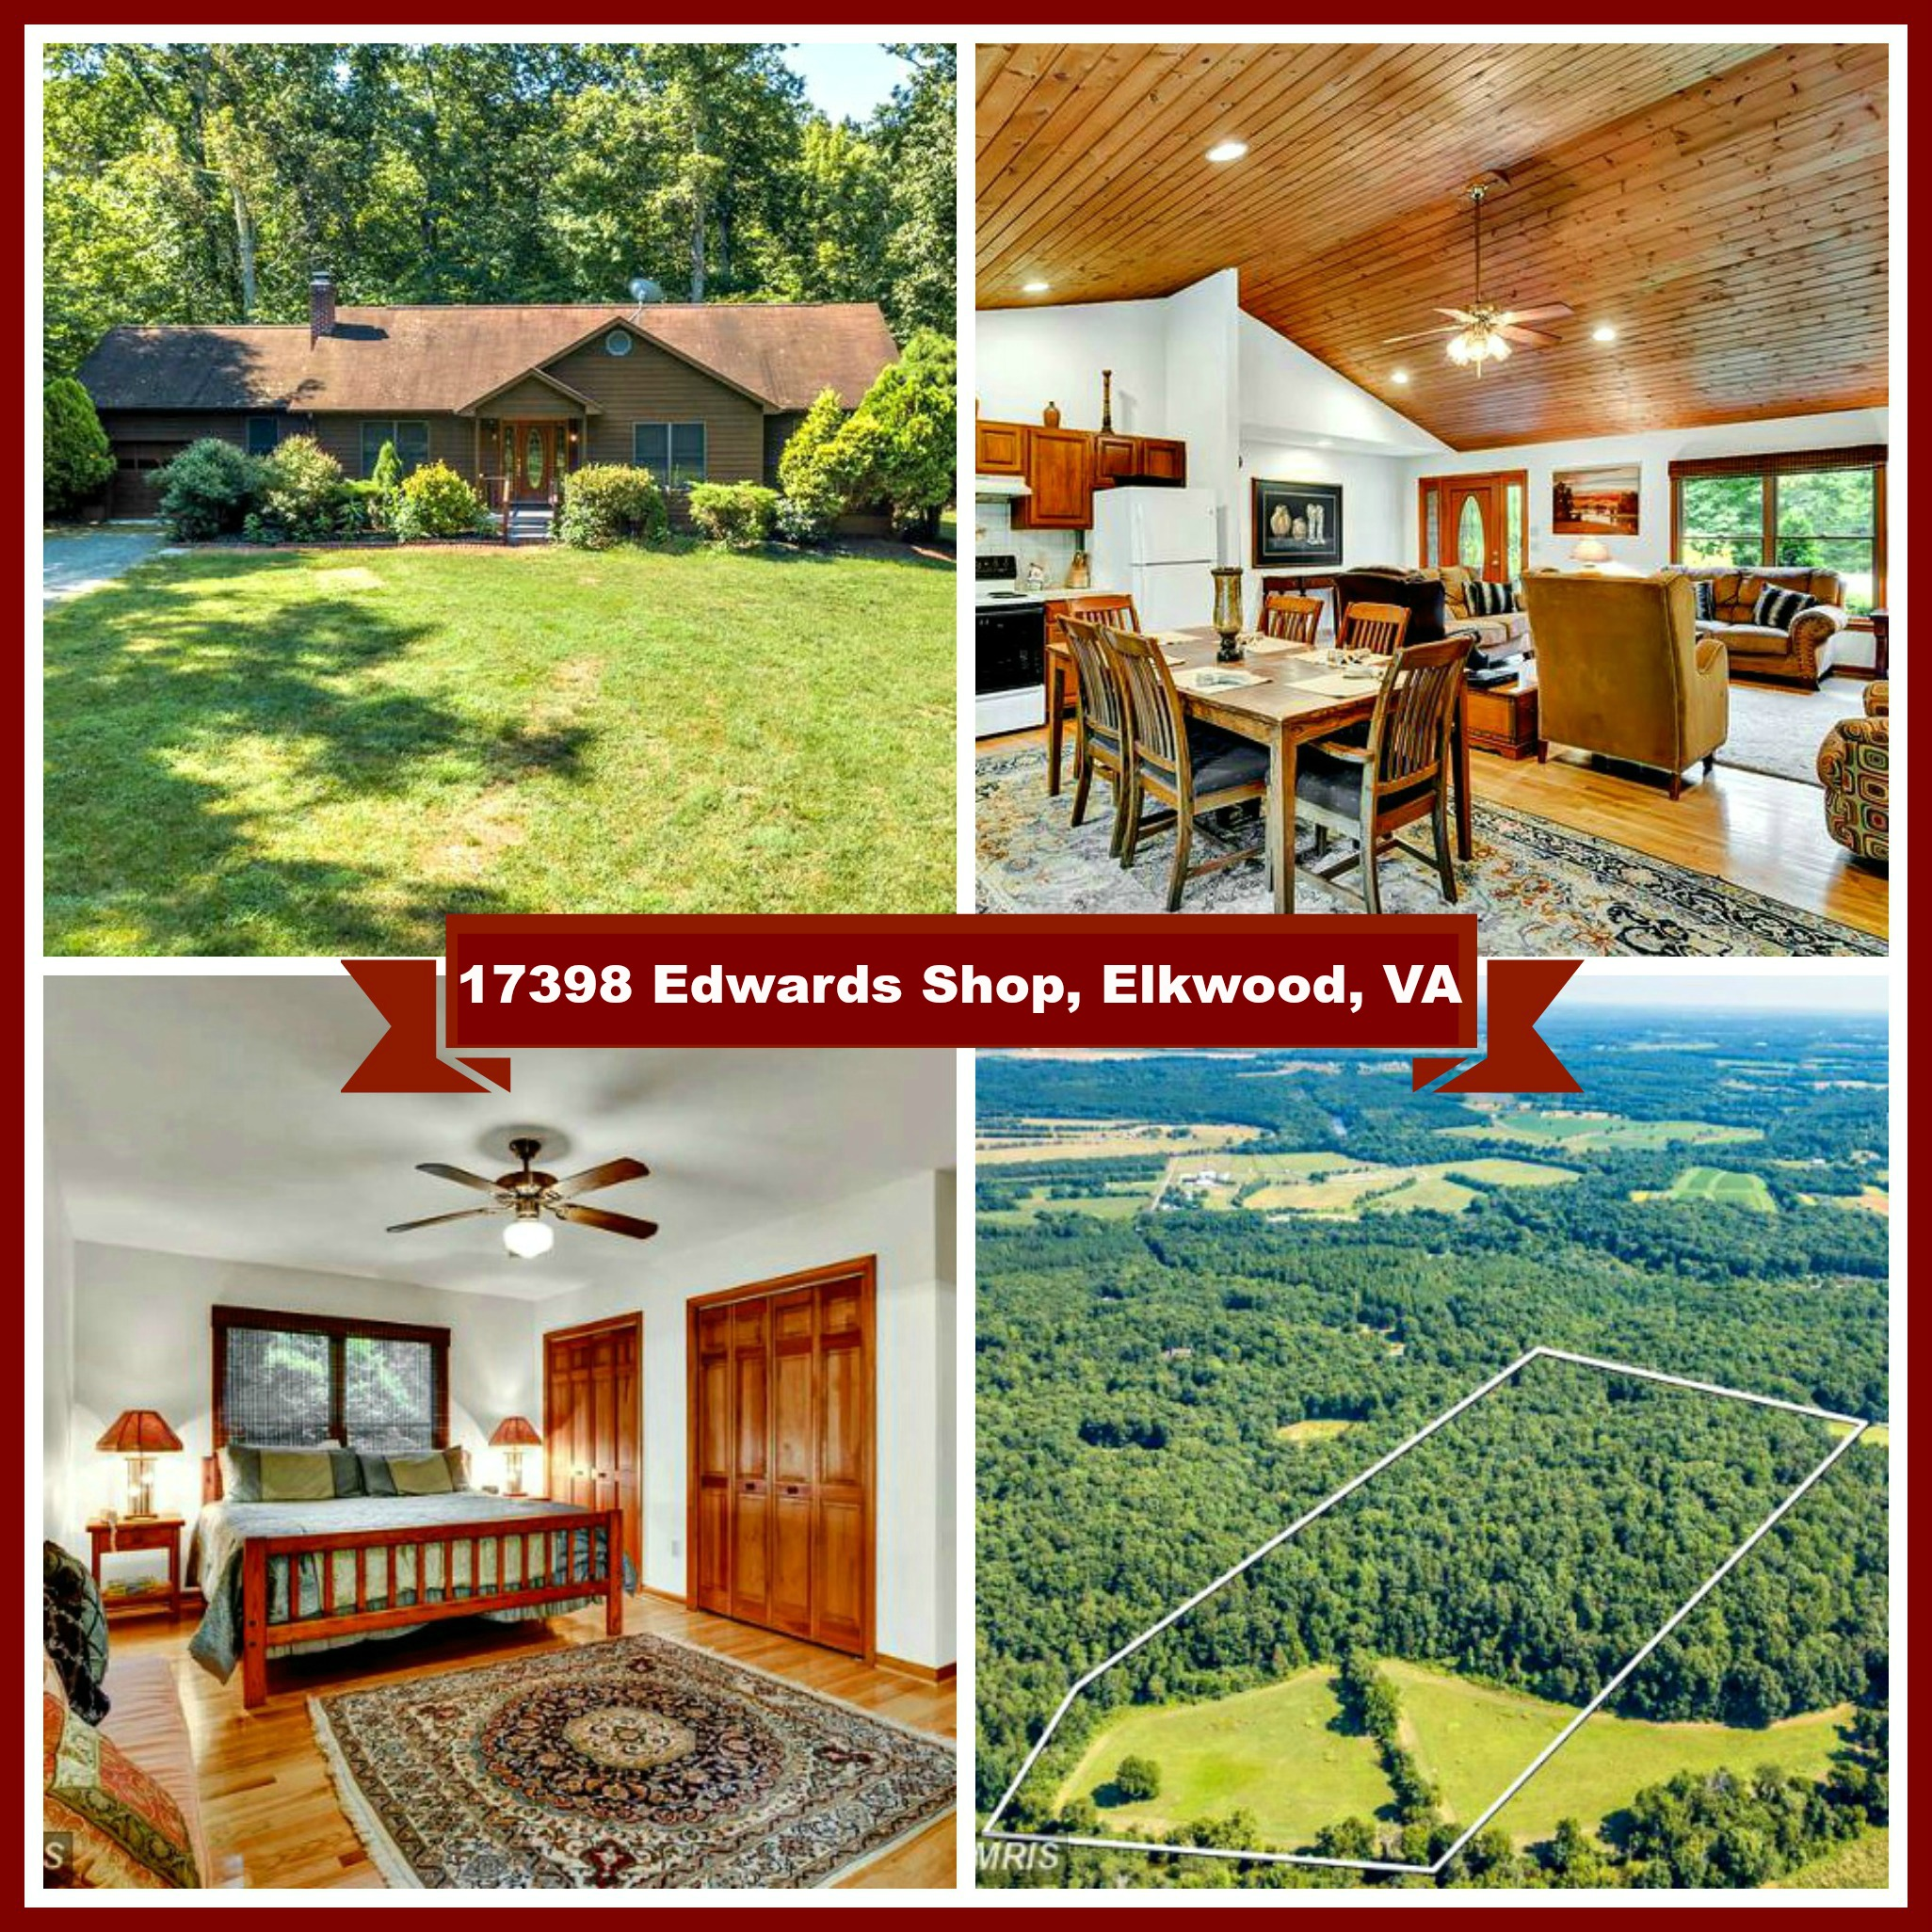 17398 Edwards Shop Road, Elkwood, VA B&B for Sale